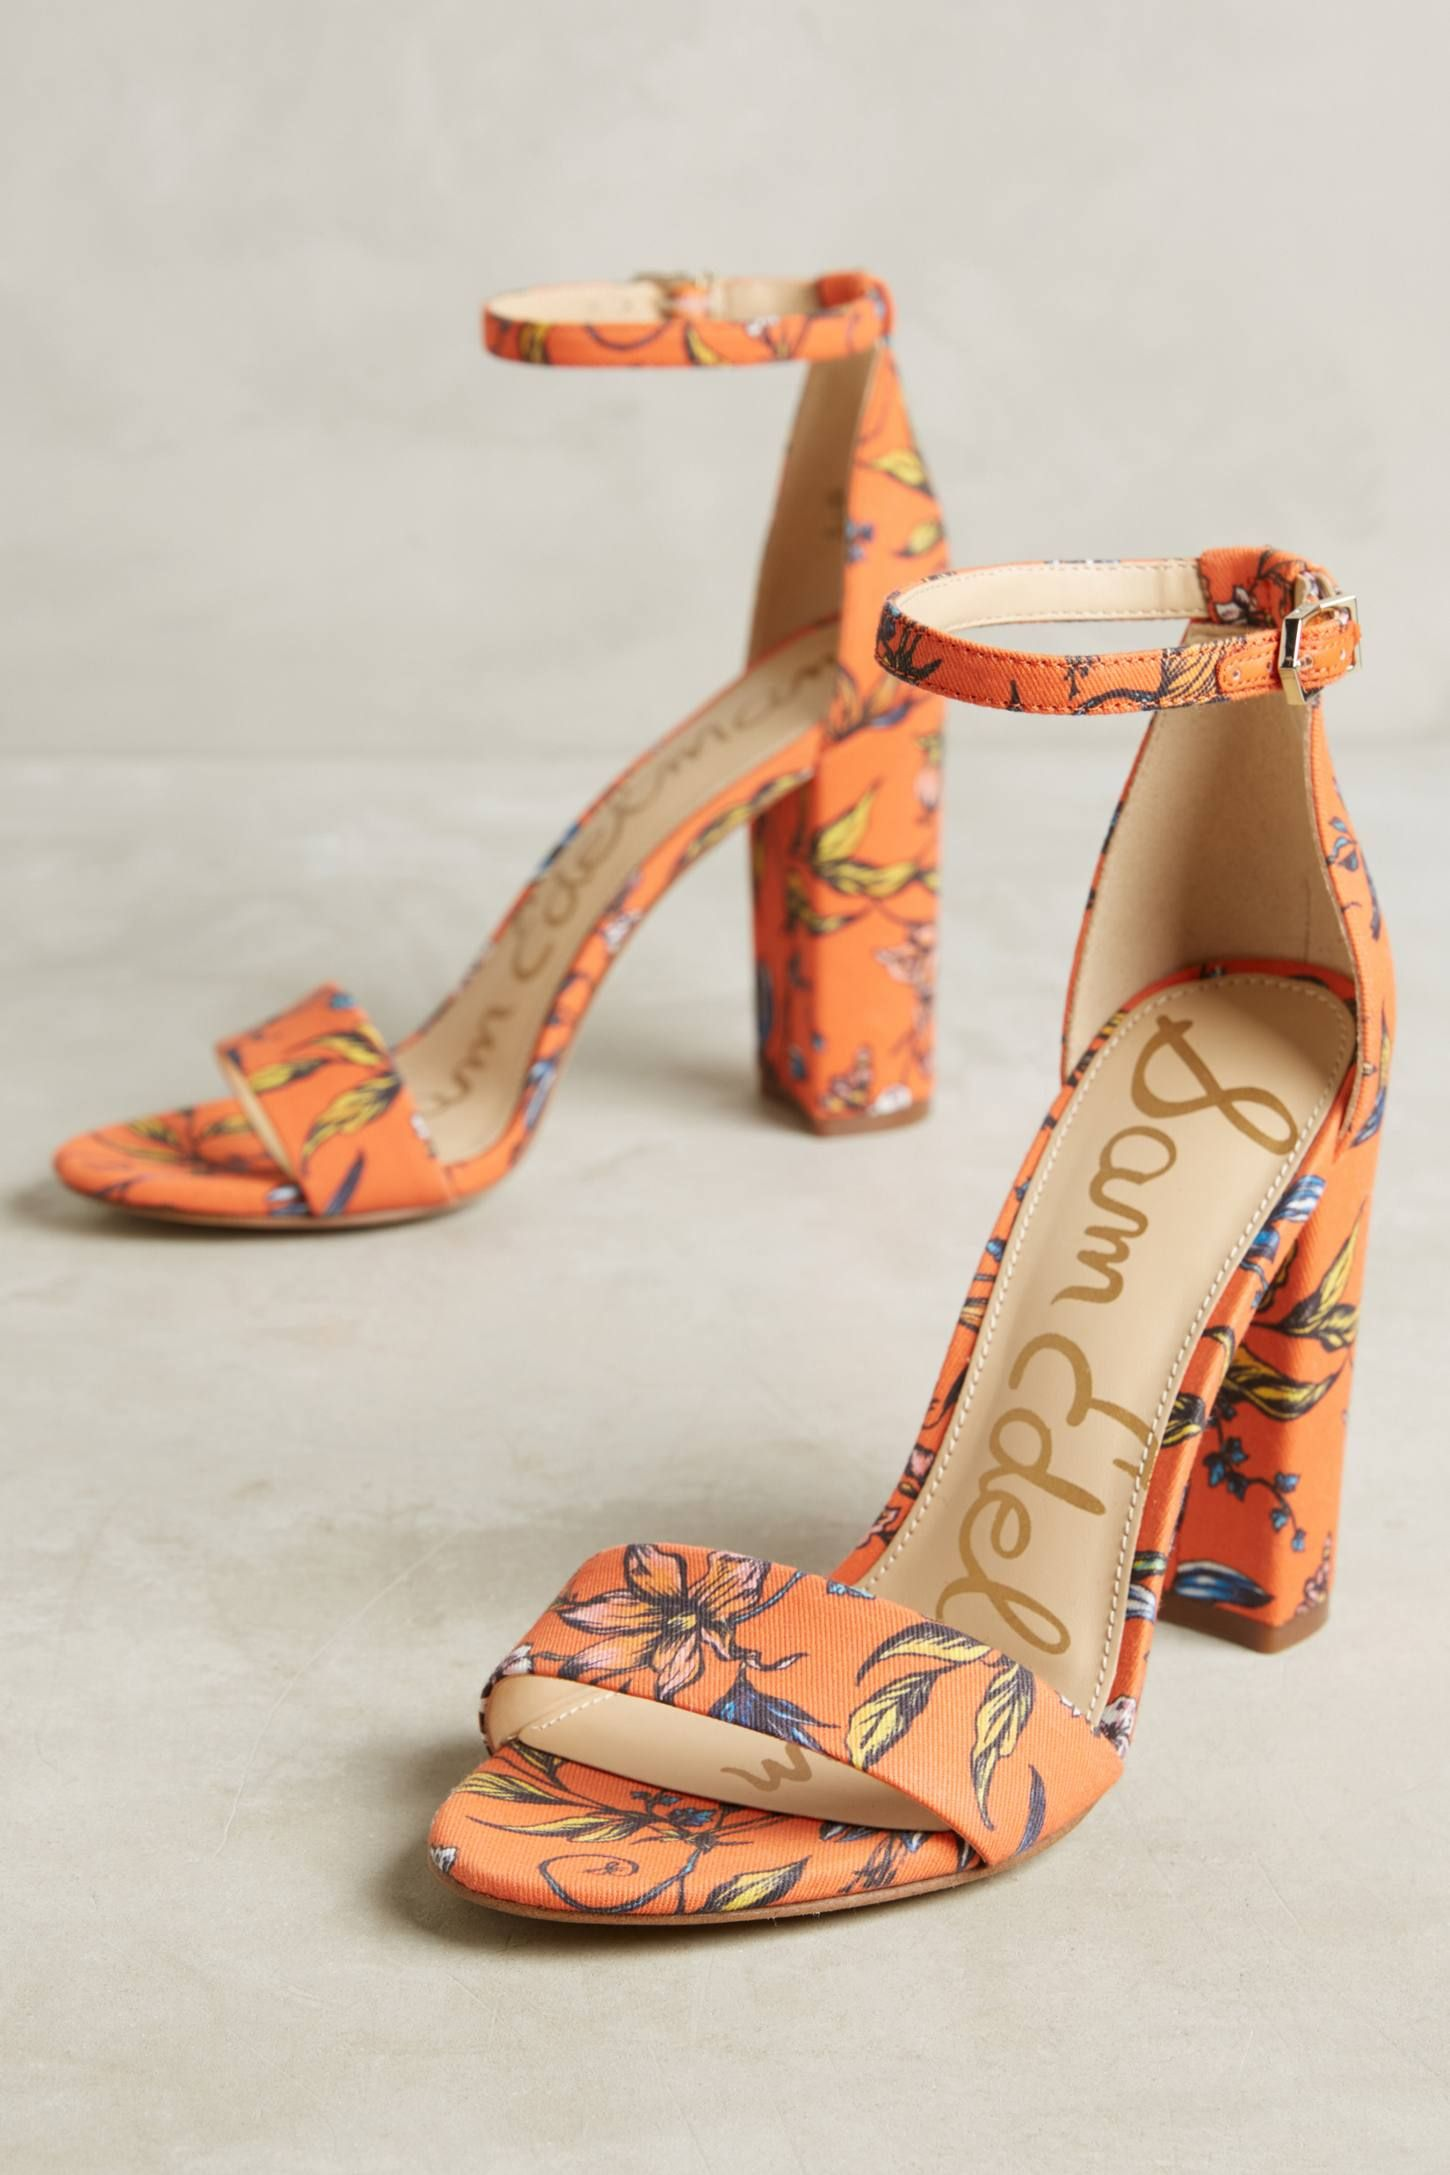 ceba690960fe Shop the Sam Edelman Yaro Heeled Sandals and more Anthropologie at  Anthropologie today. Read customer reviews